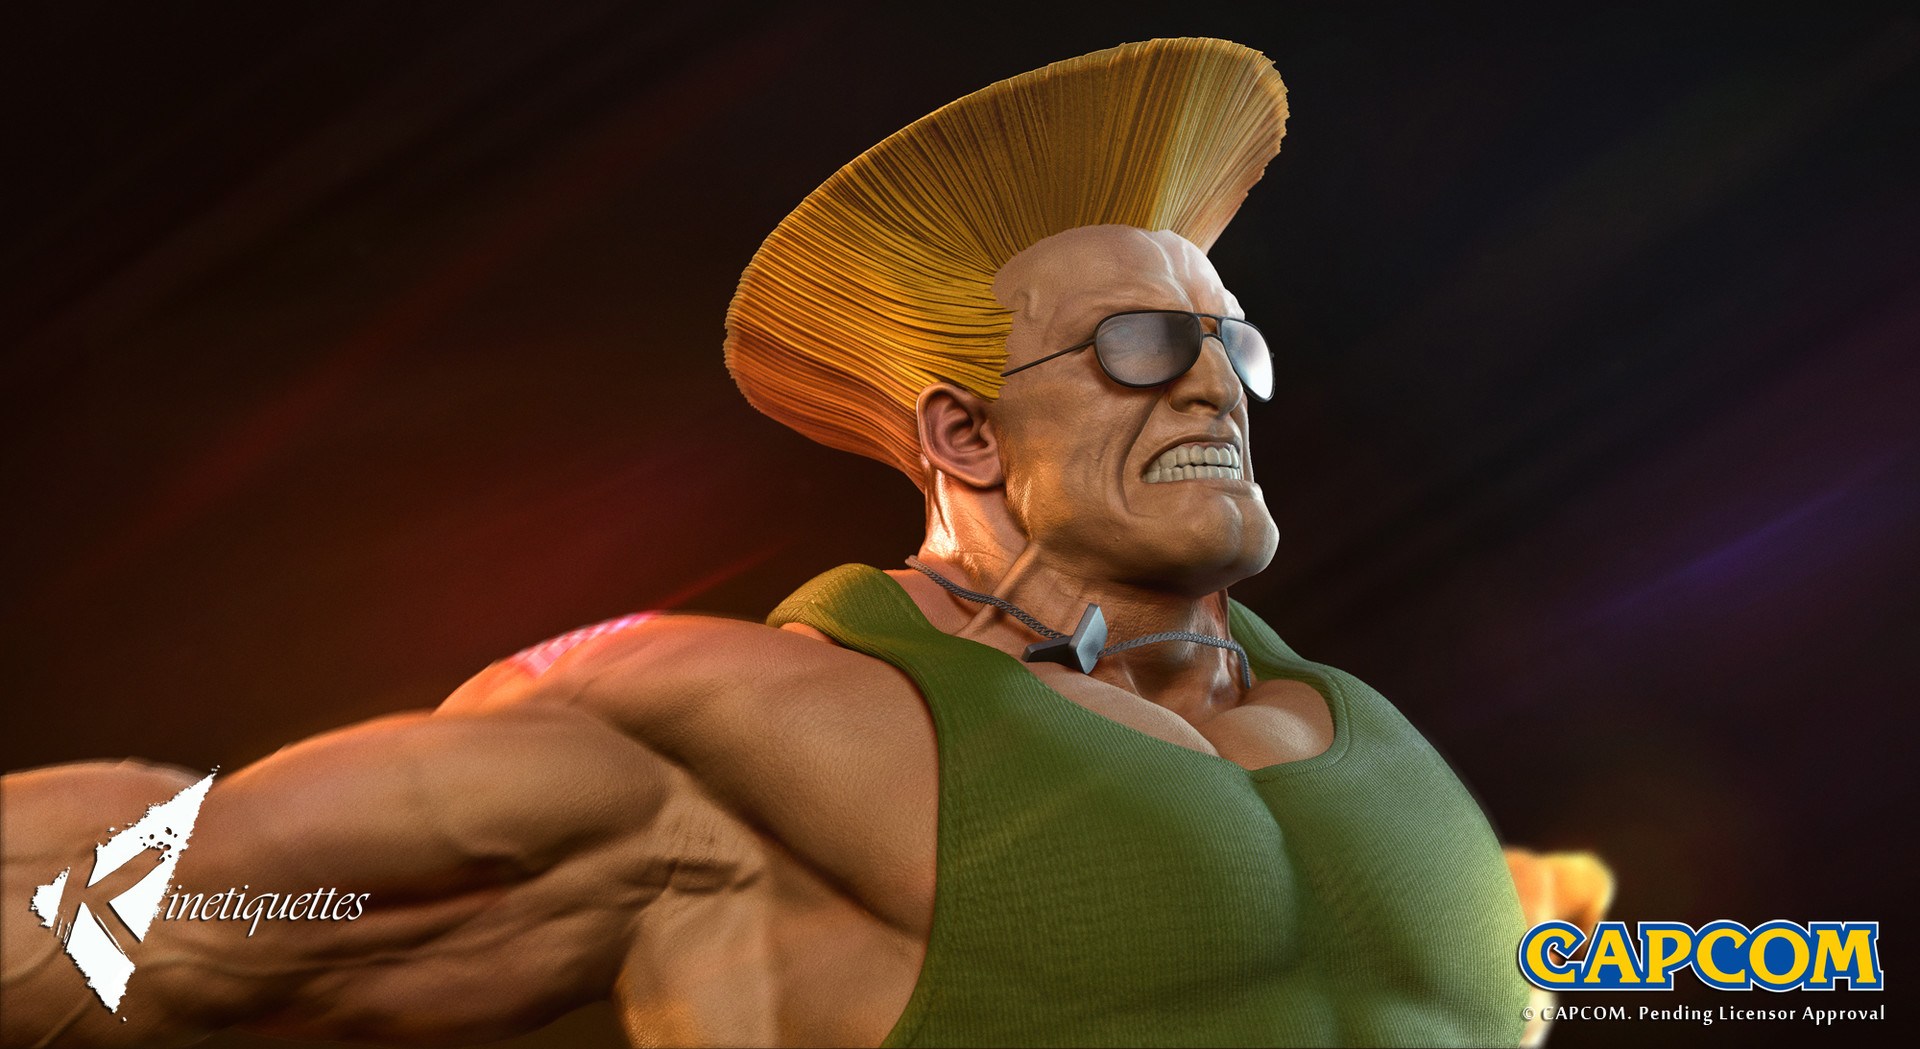 Guile with Shades